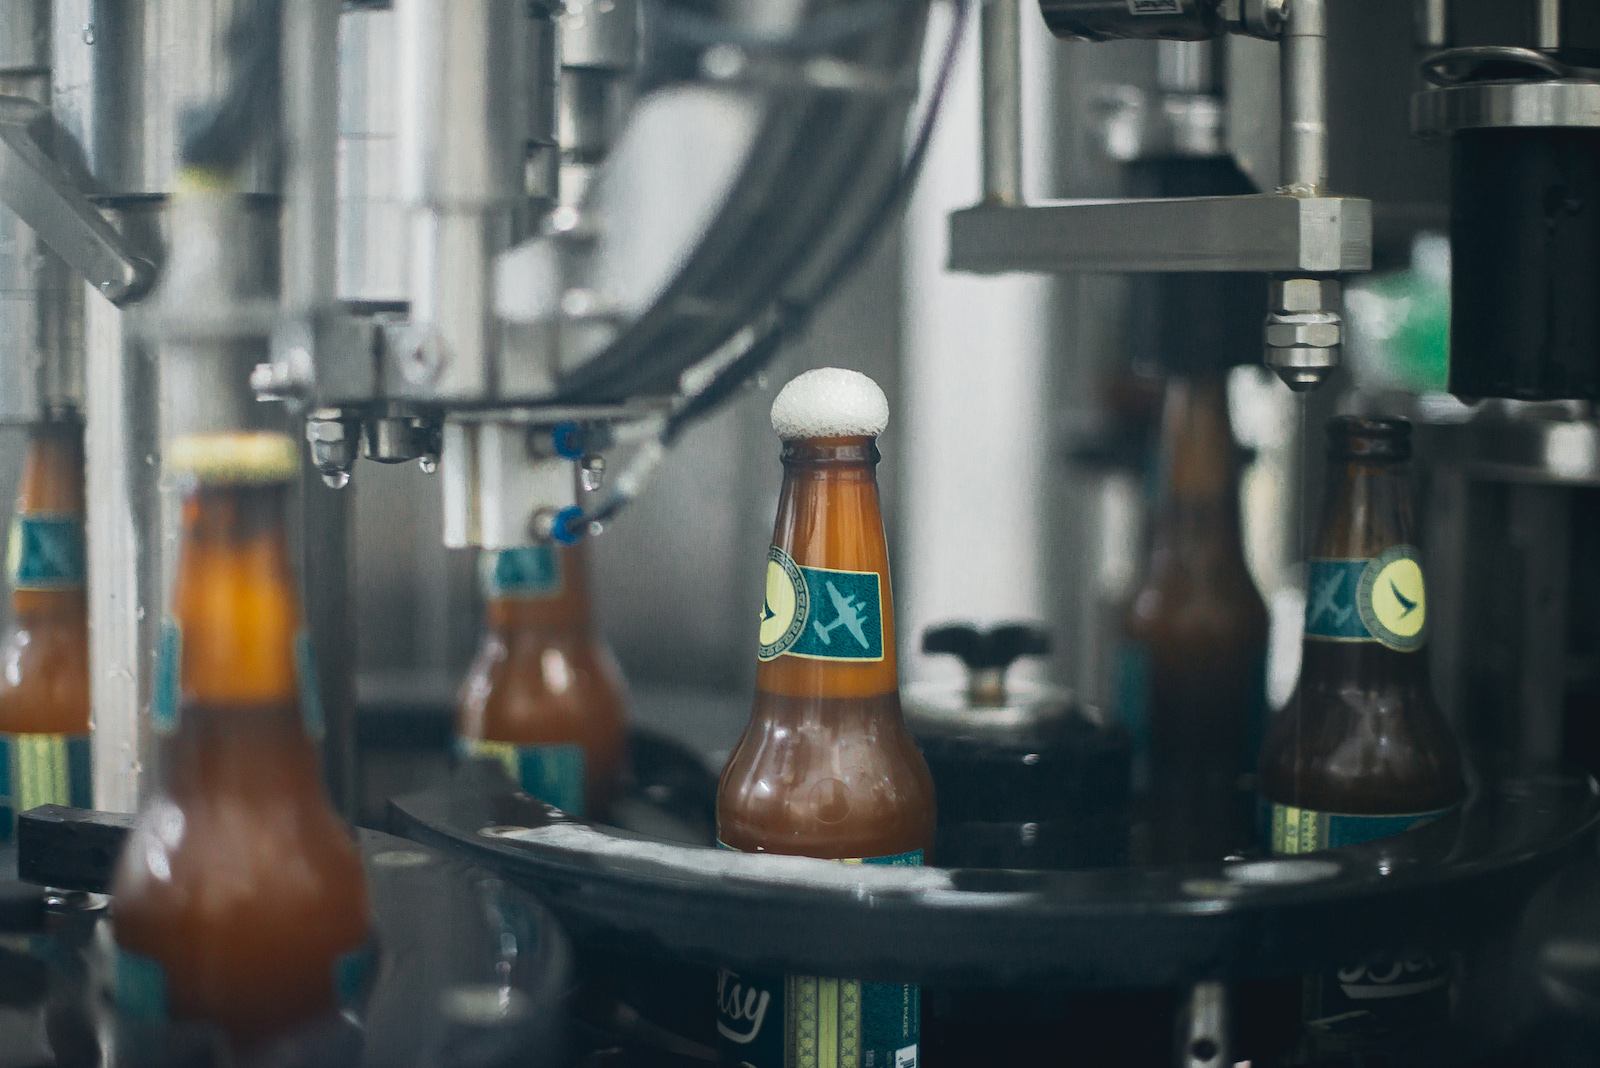 cathay-betsy-beer-production